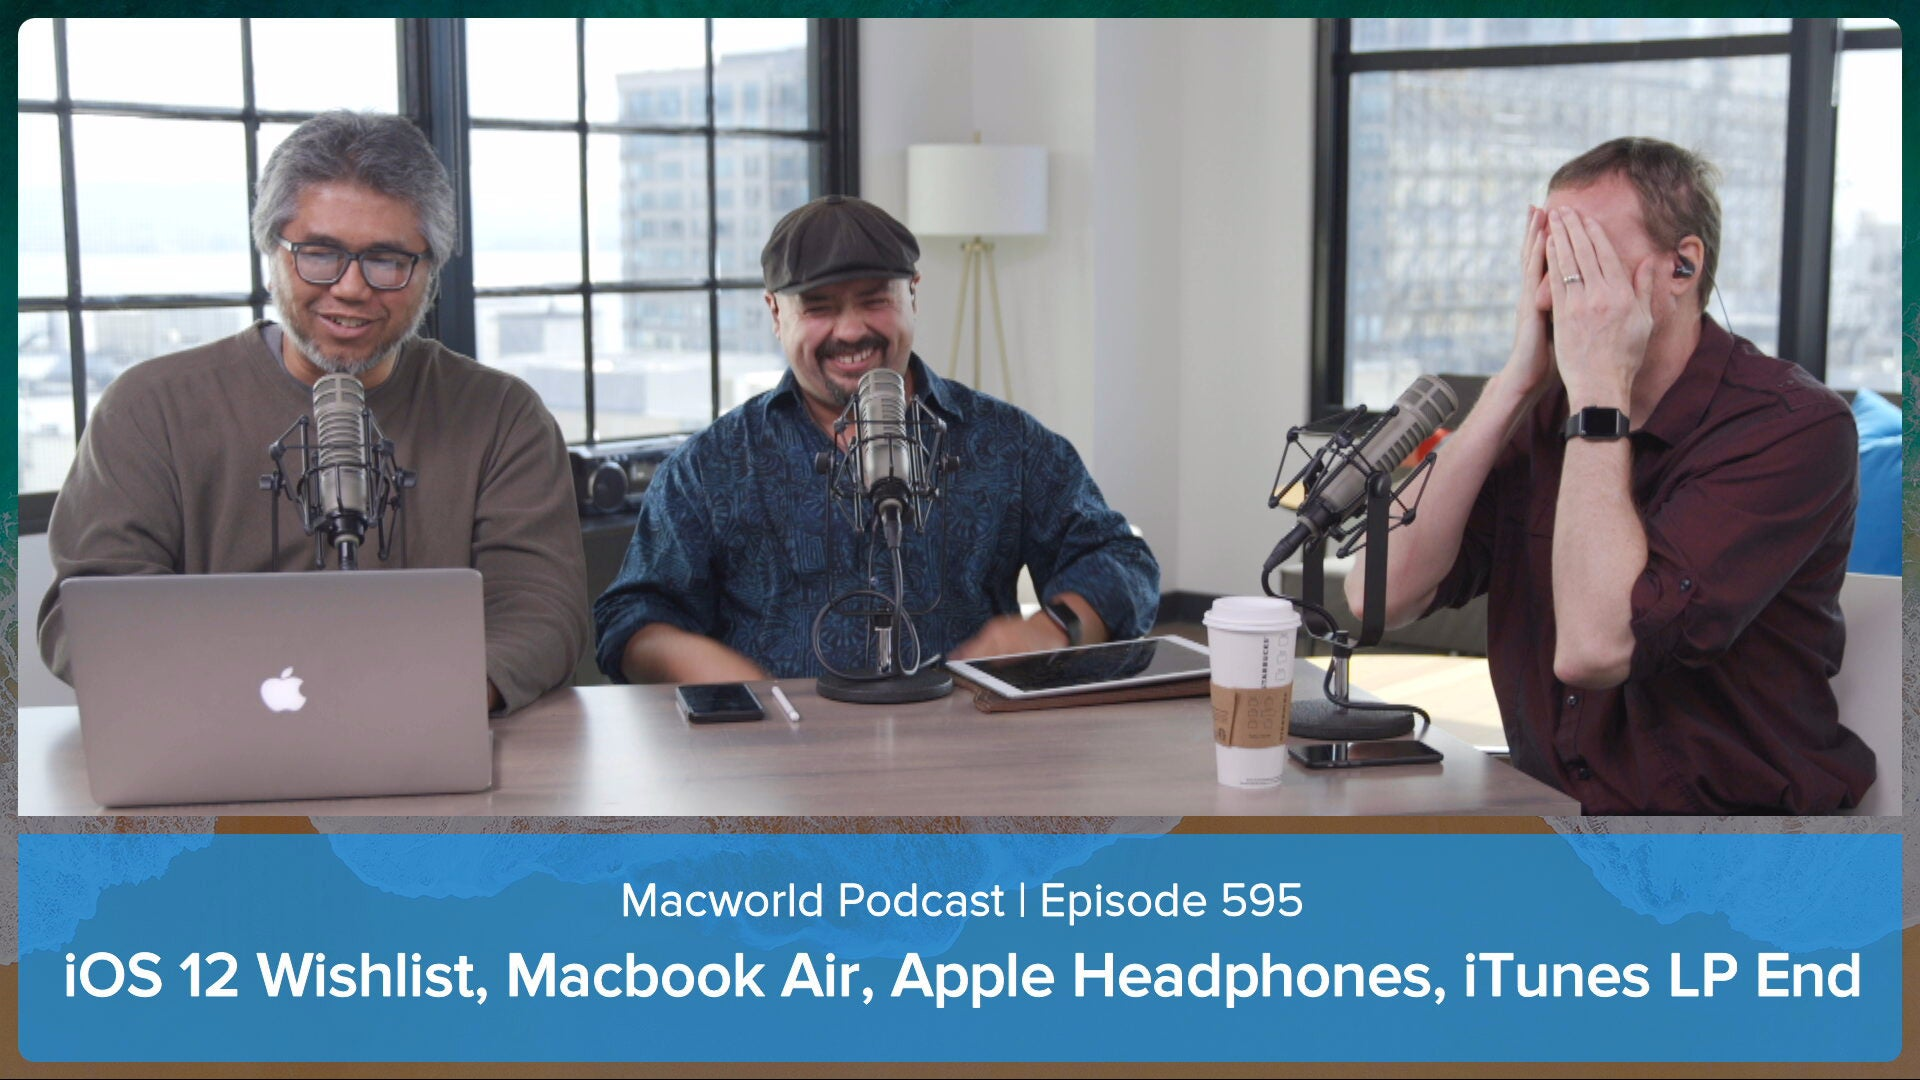 Macworld Podcast 595